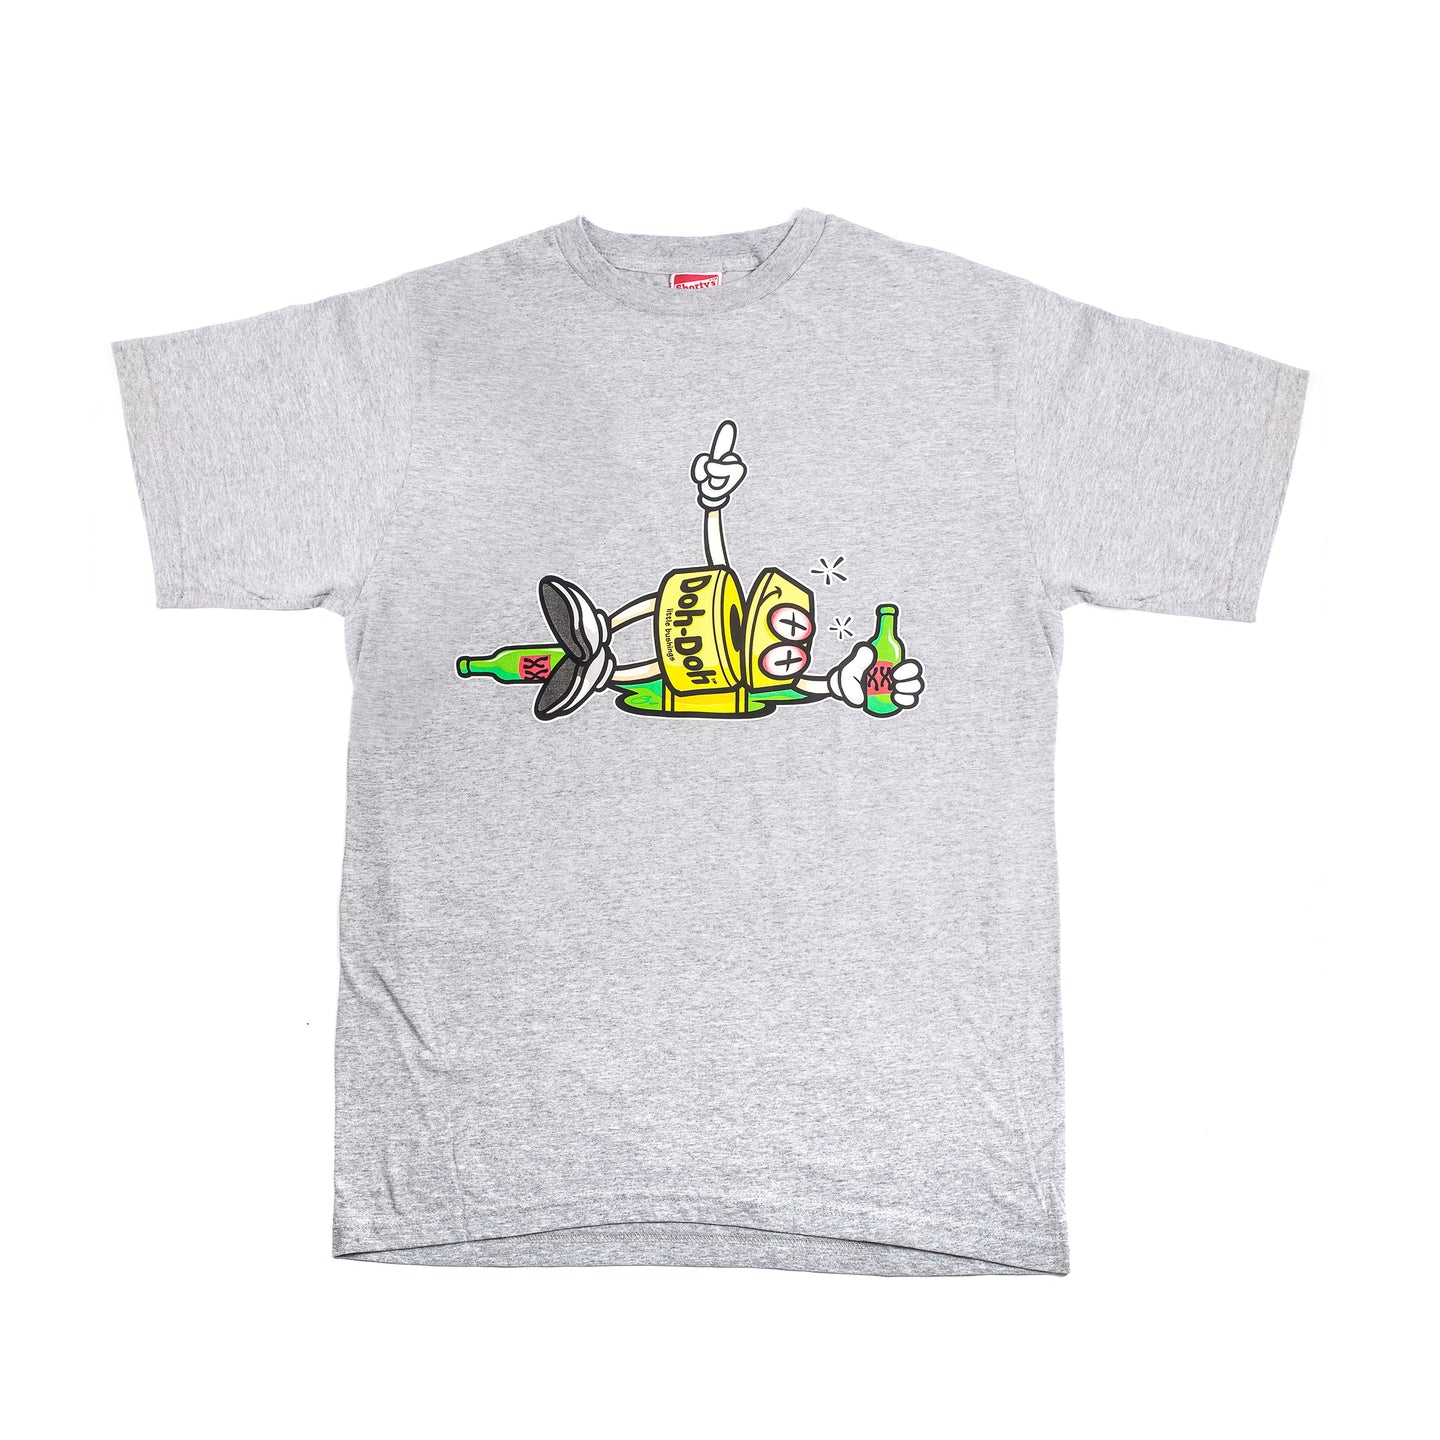 Vintage Shorty's™ Skateboards Doh-Doh™ XXX Little Bushings T-Shirt